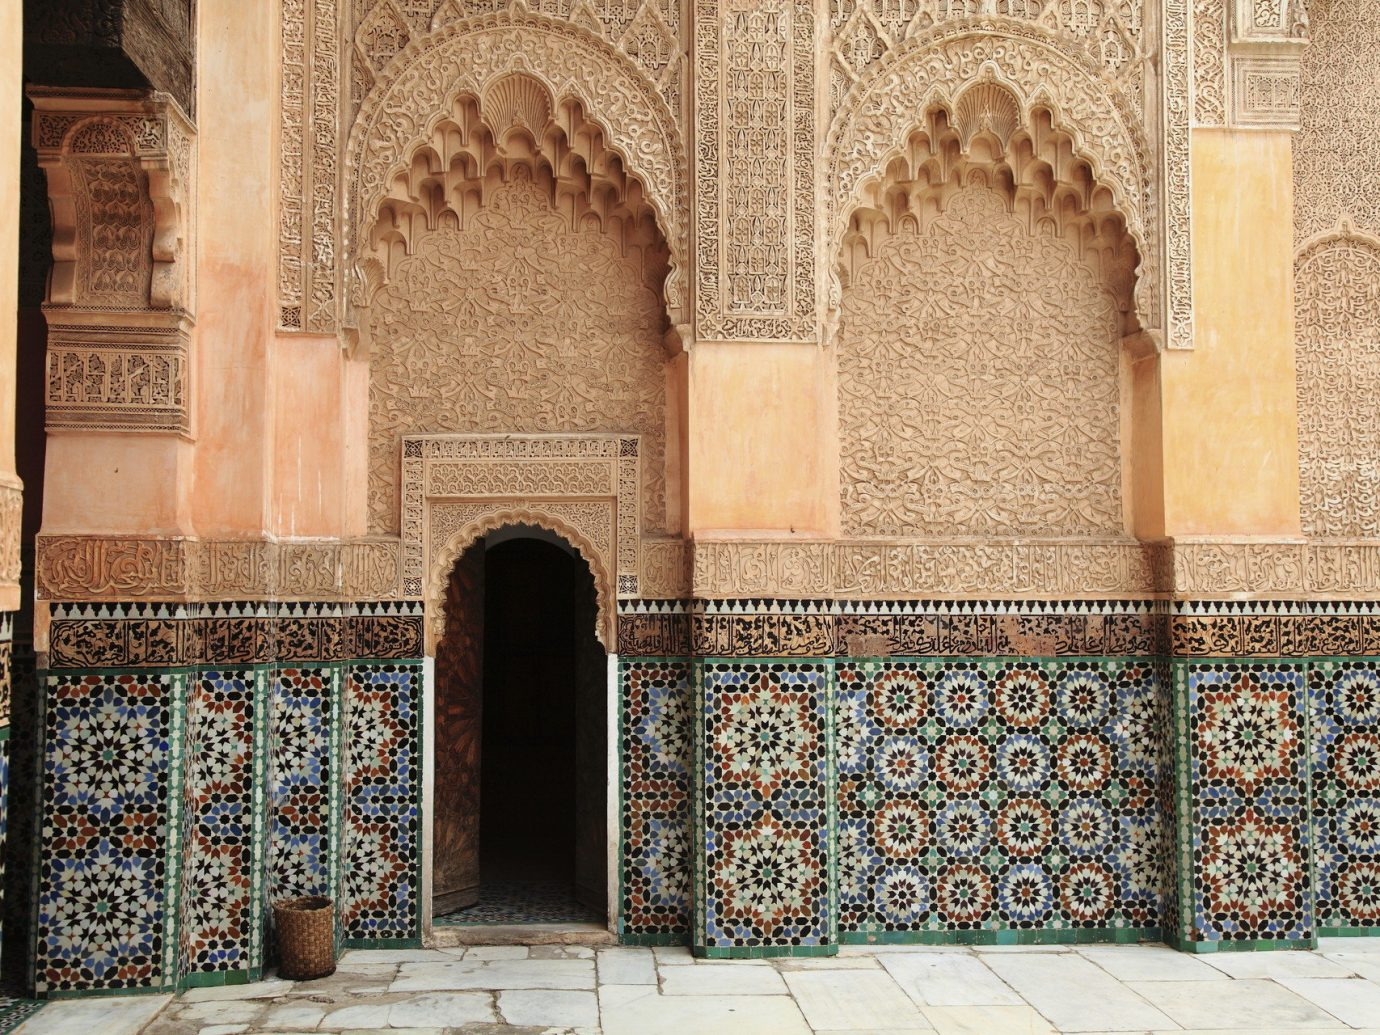 Travel Tips building palace Architecture mosque ancient history art facade place of worship arch interior design flooring temple synagogue tiled monastery cathedral chapel stone decorated tile altar painted colored